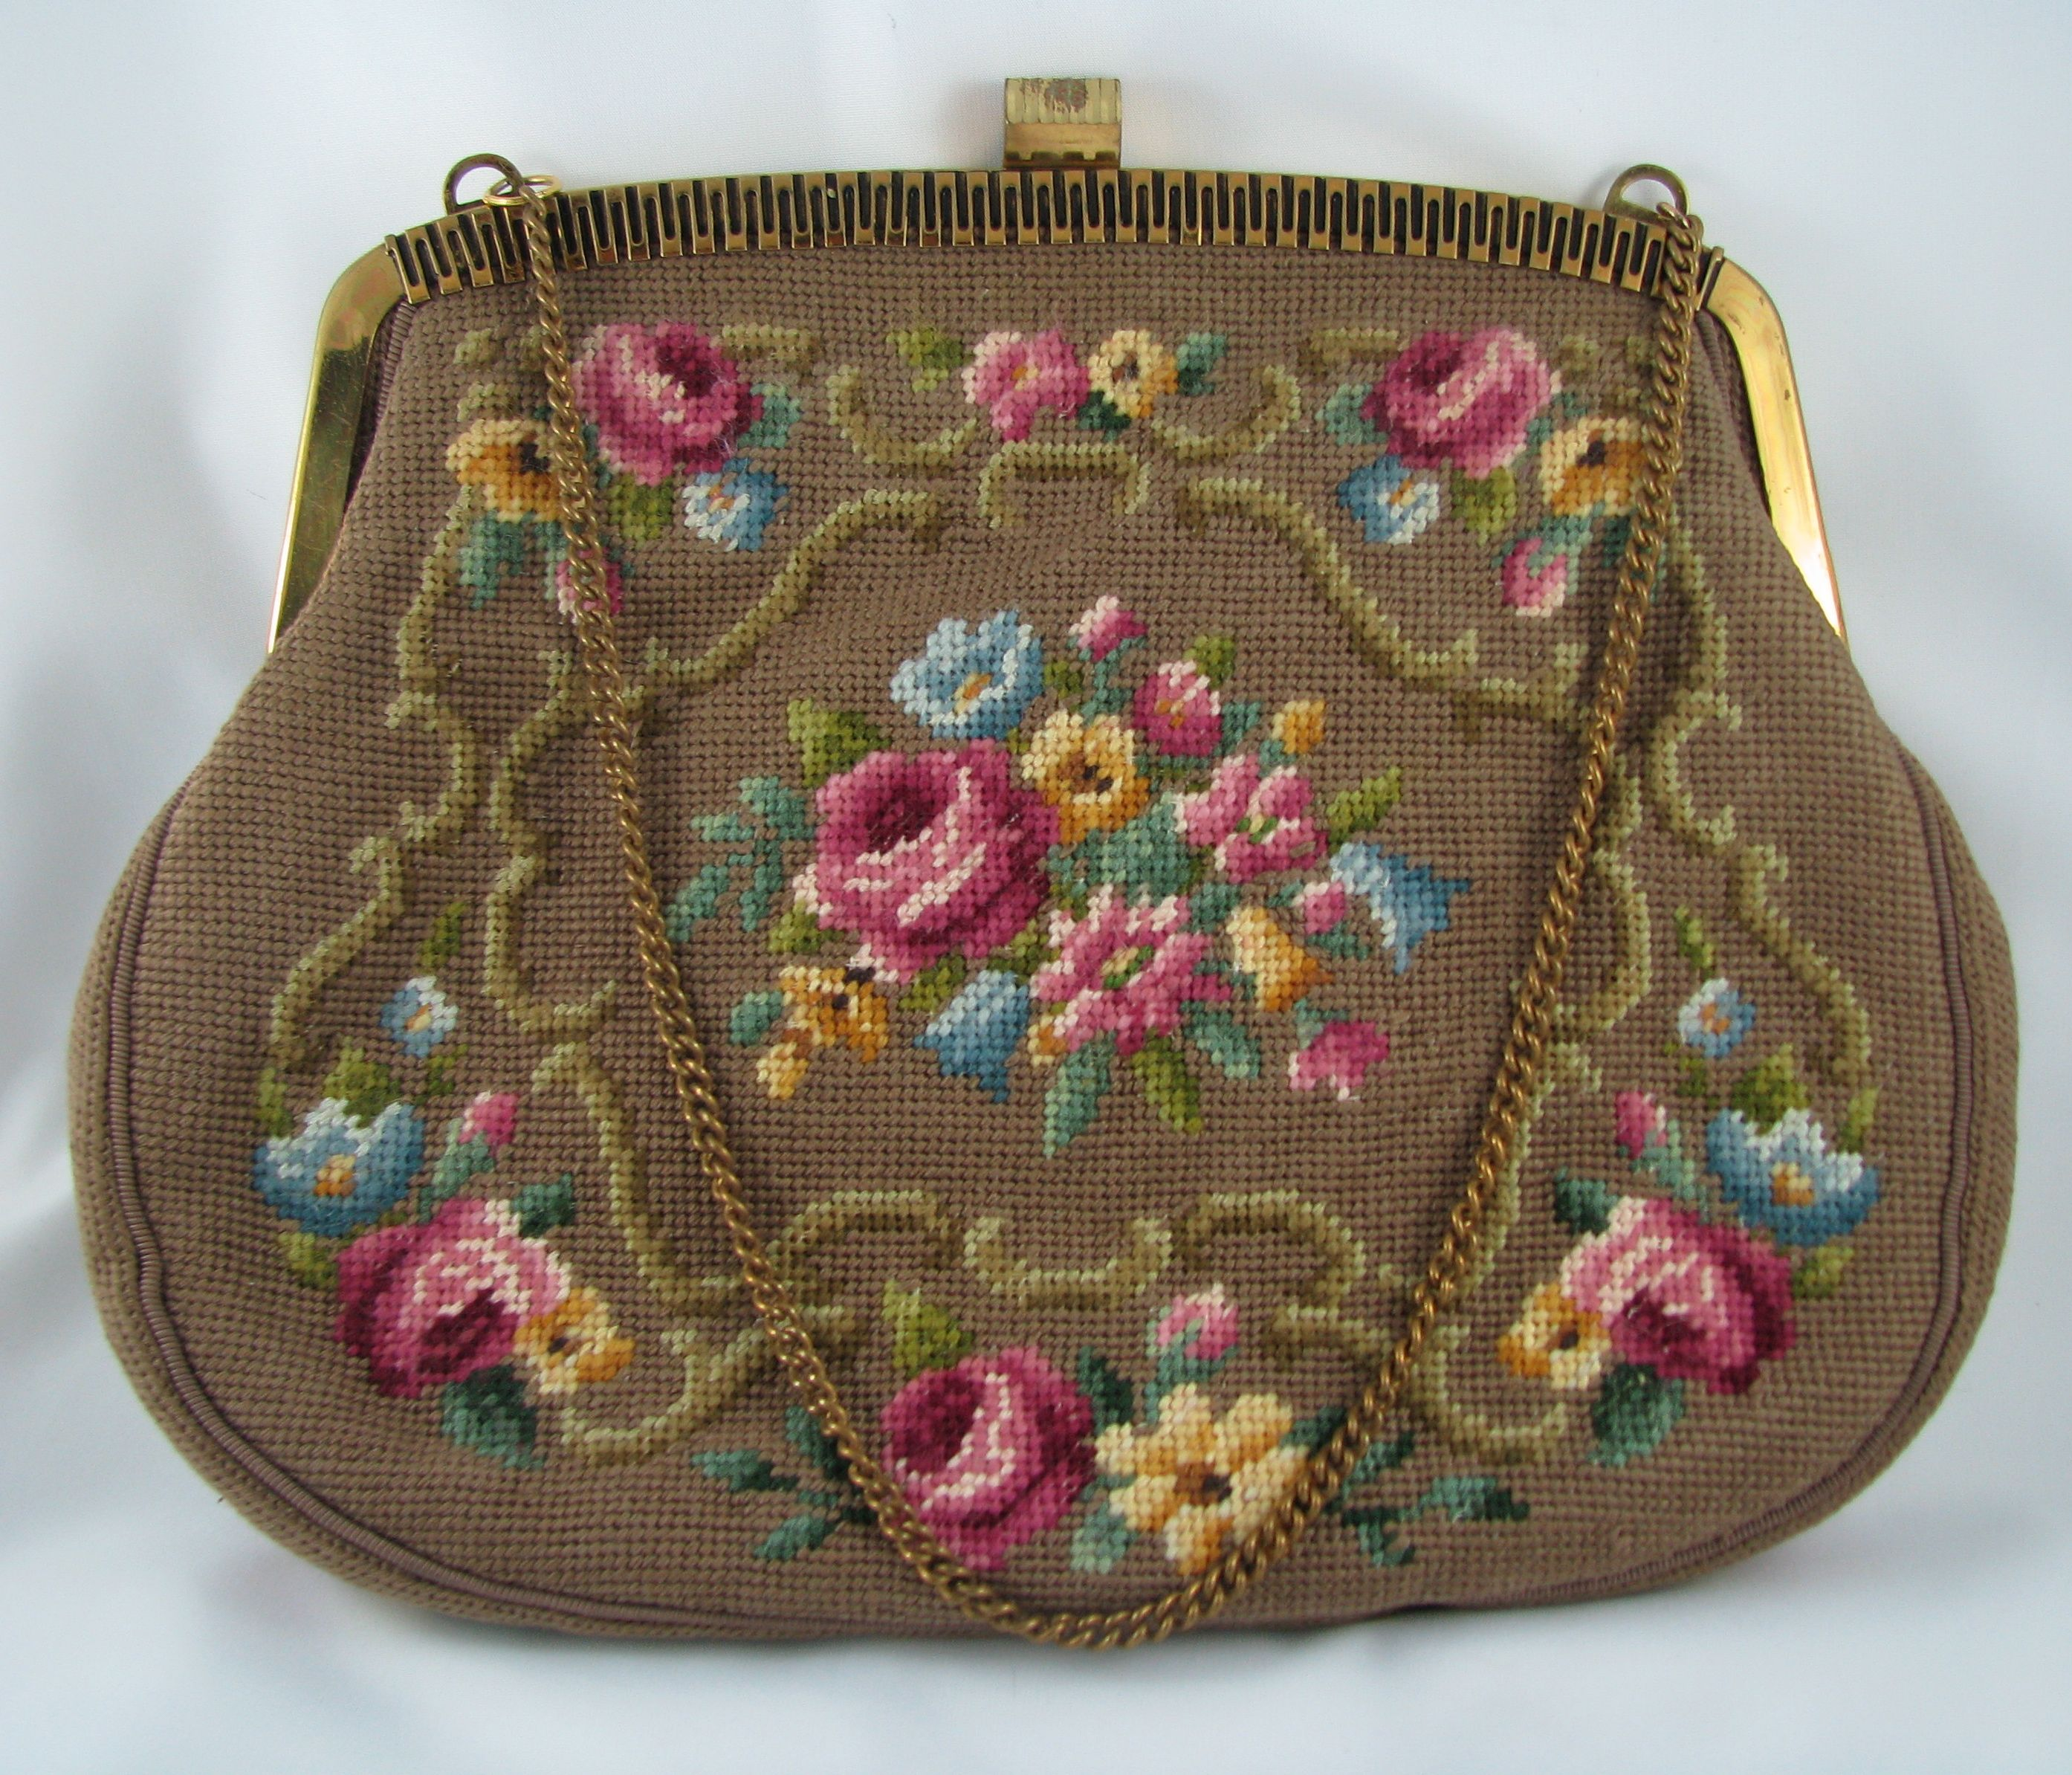 Vintage tapestry bag gold coloured frame chain handle If you wish to purchase $75.00  contact me through my web at http://vintagecollector.ca/